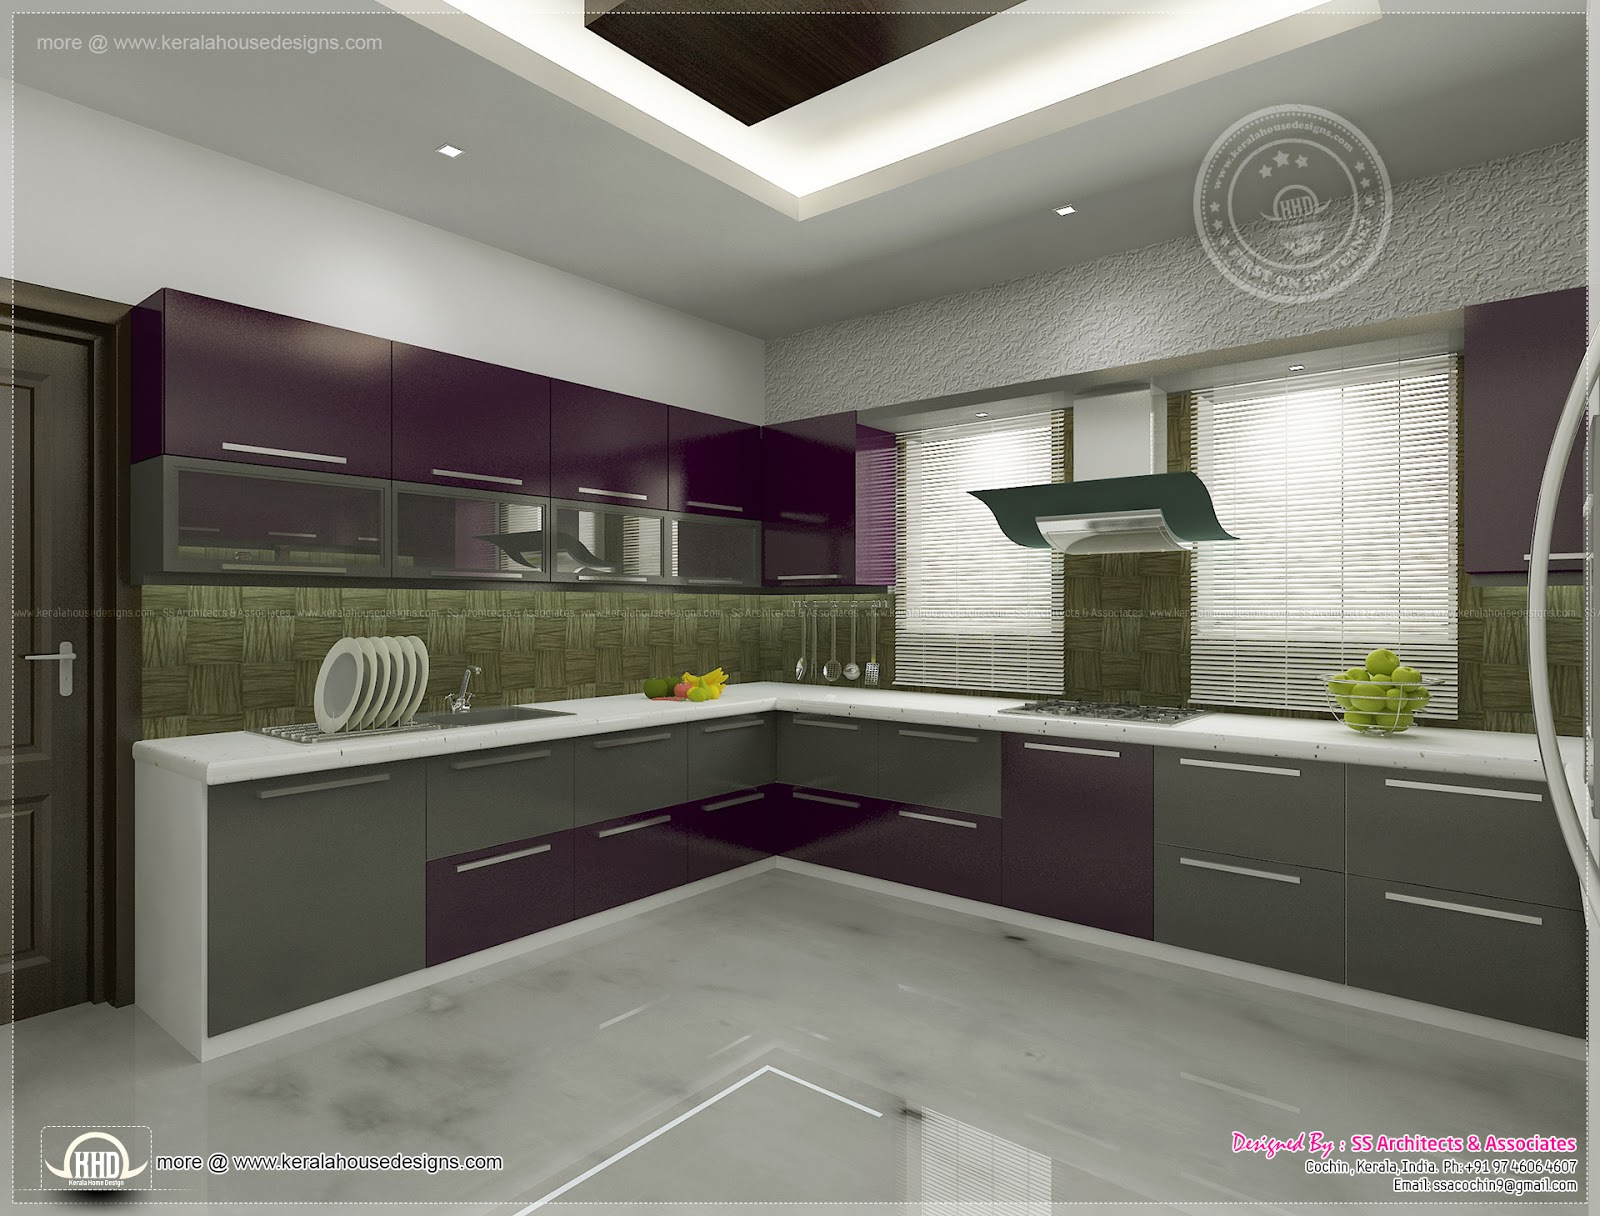 Kitchen interior views by ss architects cochin kerala - Interior home design pic ...